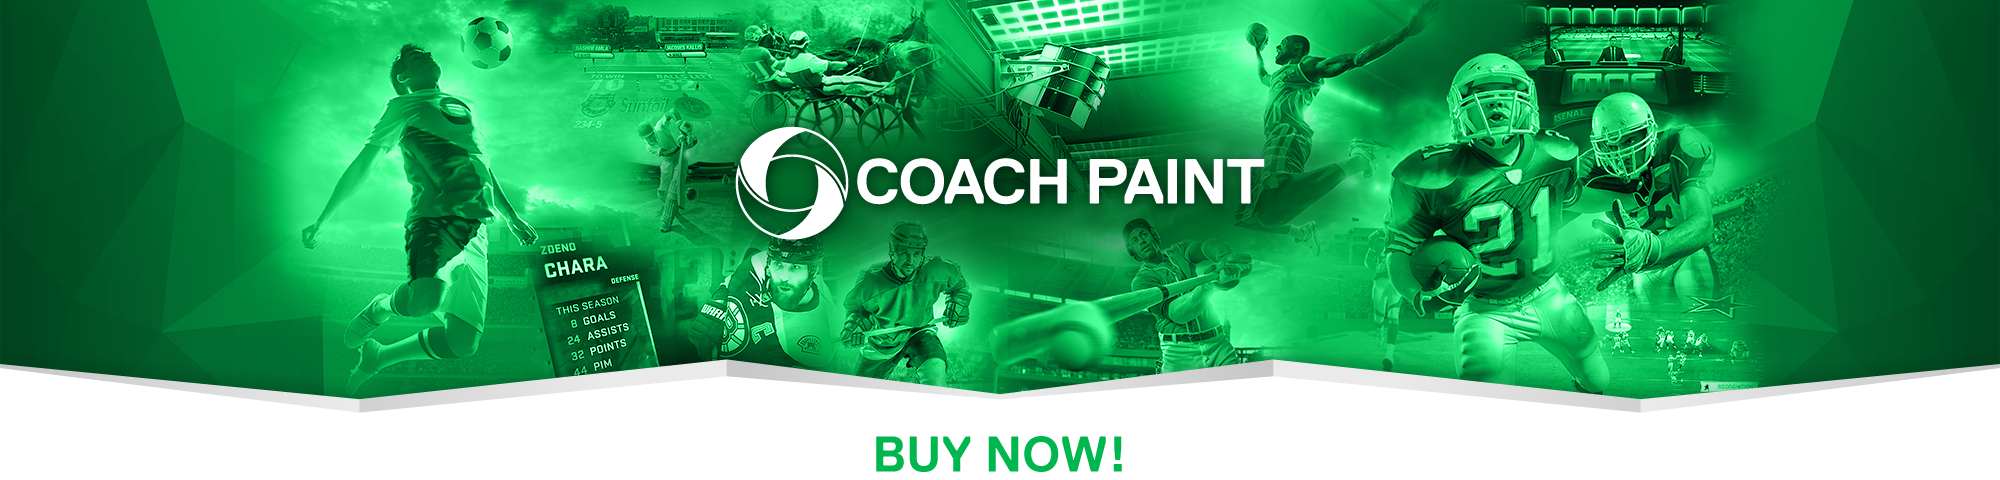 CoachPaint-End30DayTrial-LP-2000x480.png